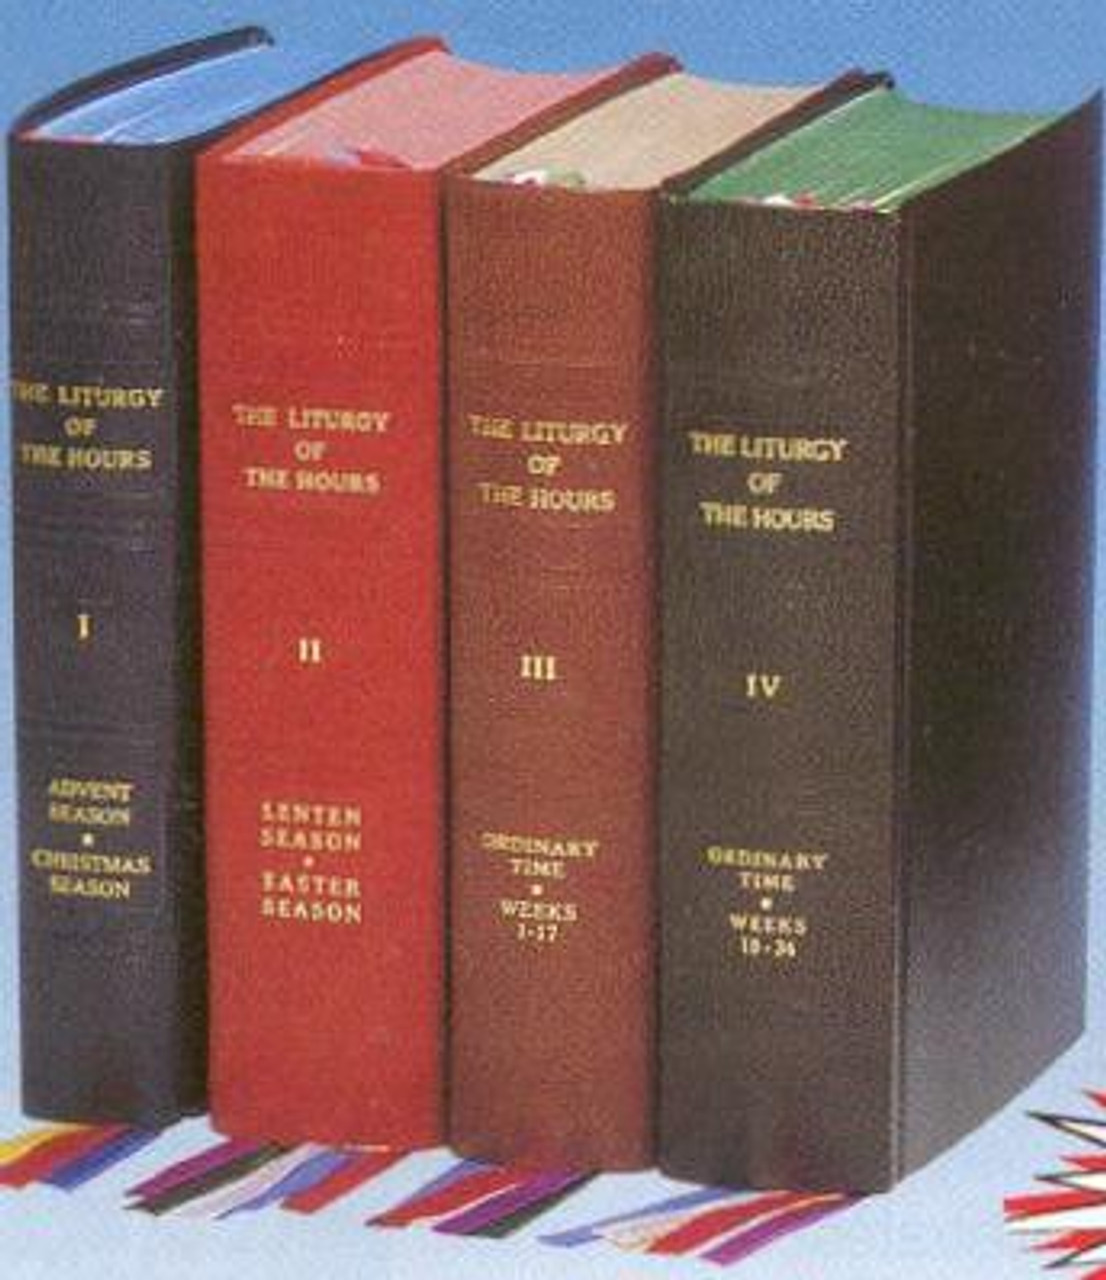 Four Volume Set of Liturgy of the Hours -  Standard Print--Full set or individual volumes -- imitation leather binding